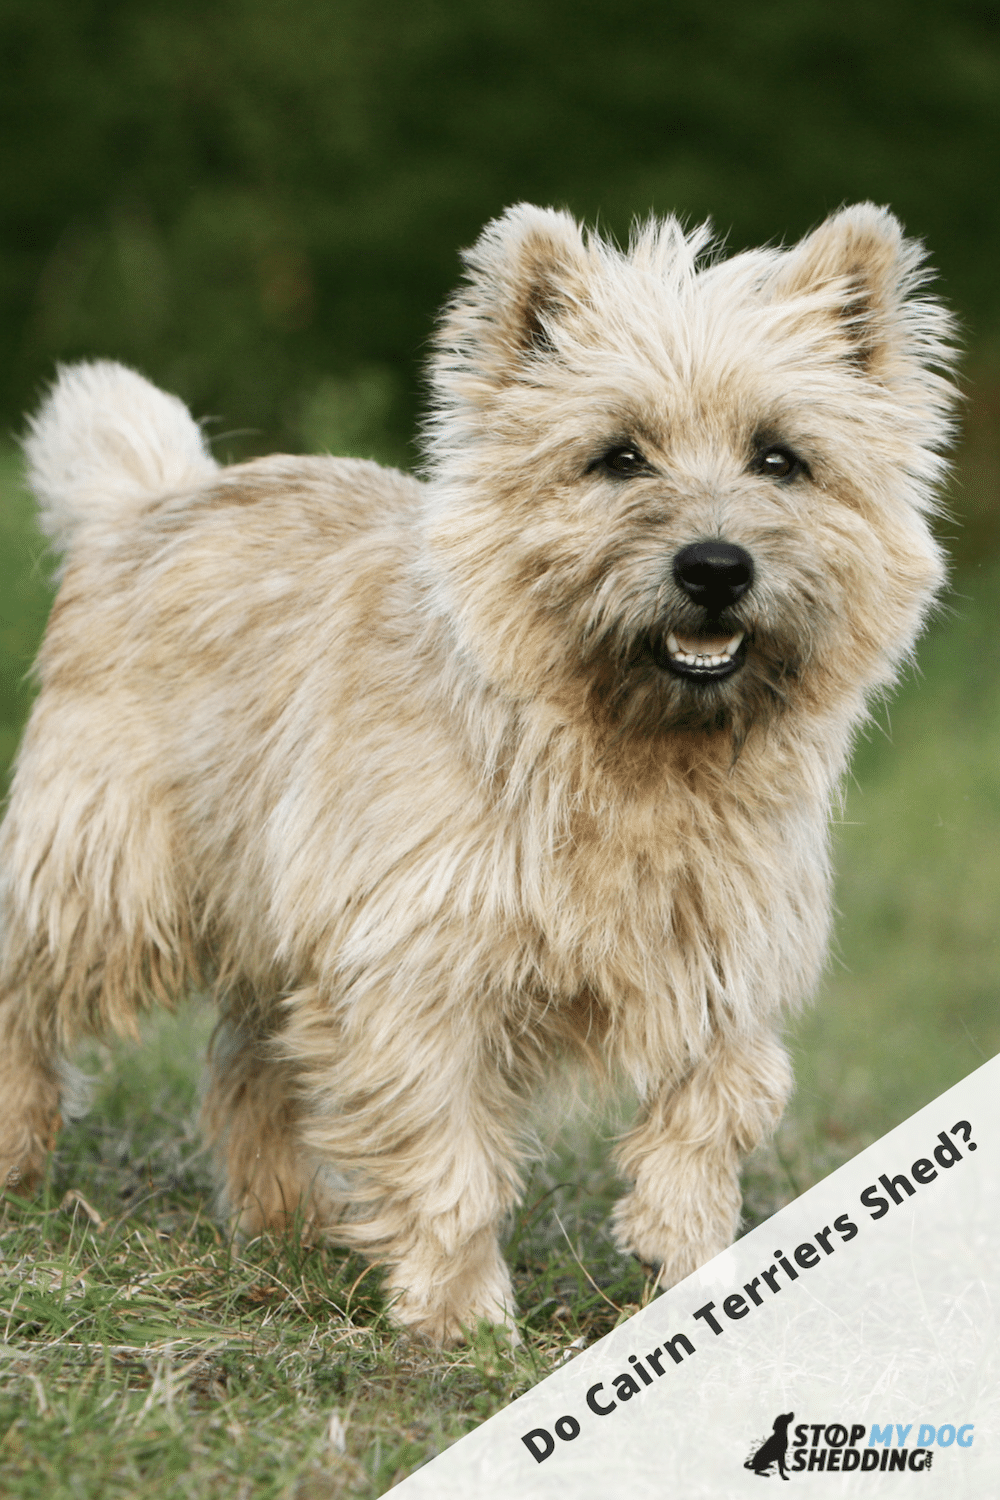 Cairn Terrier Shedding - What to Expect